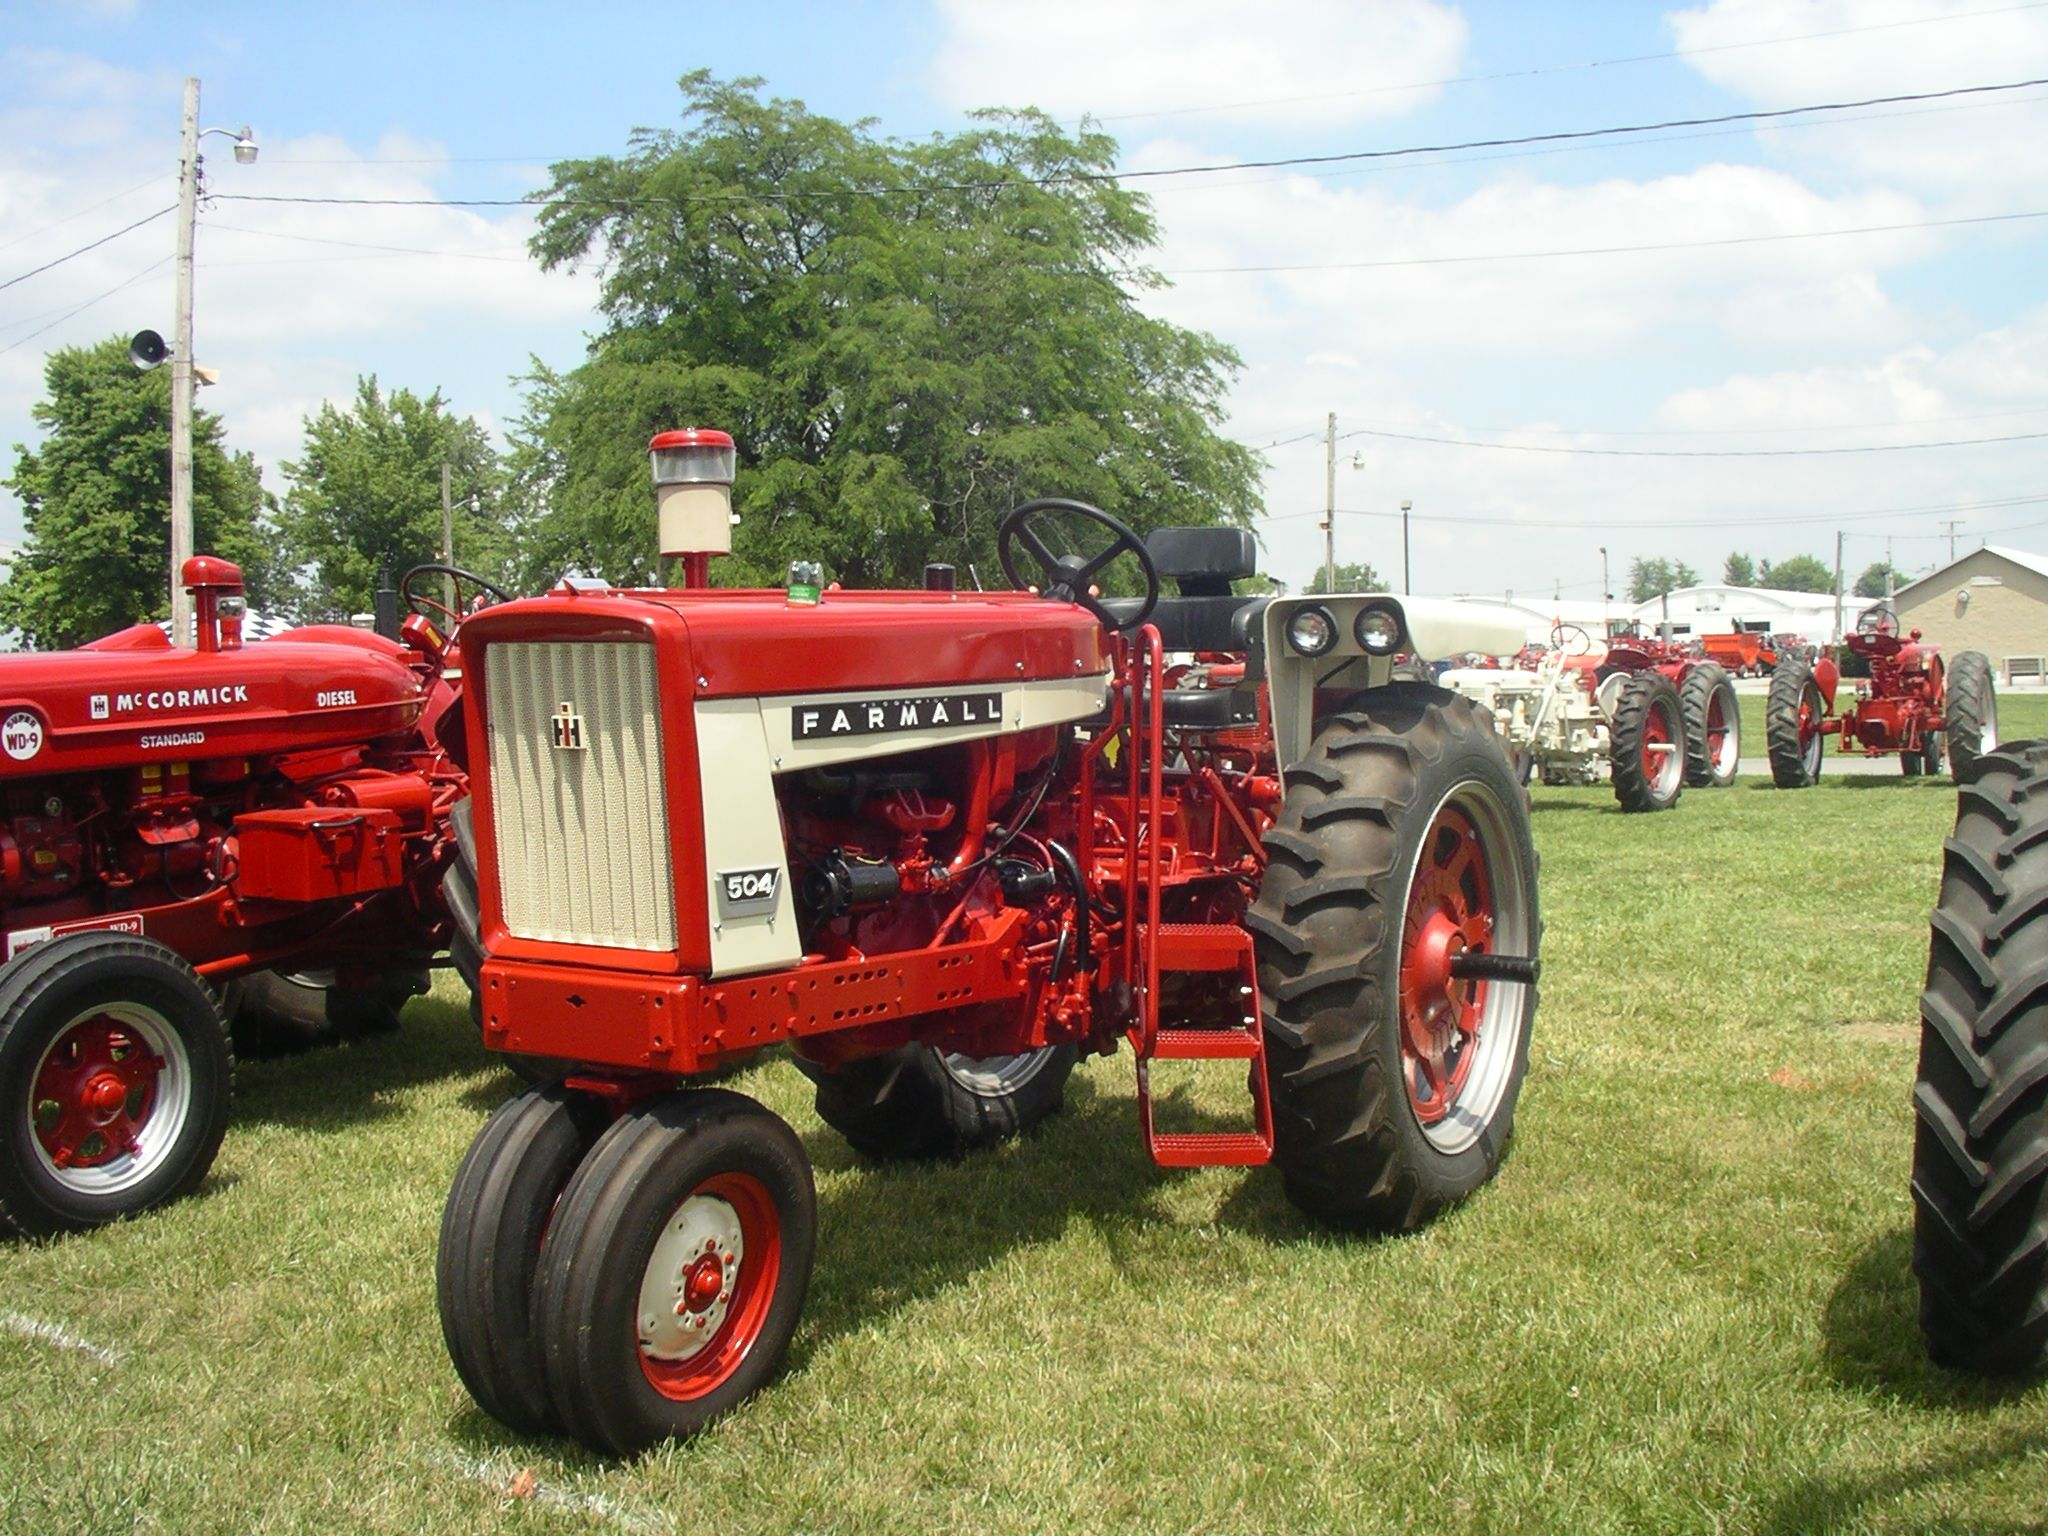 Farmall 504 With Correct Fenders But Wrong Color They Should Be 856 Wiring Schematic Red Instead Of White